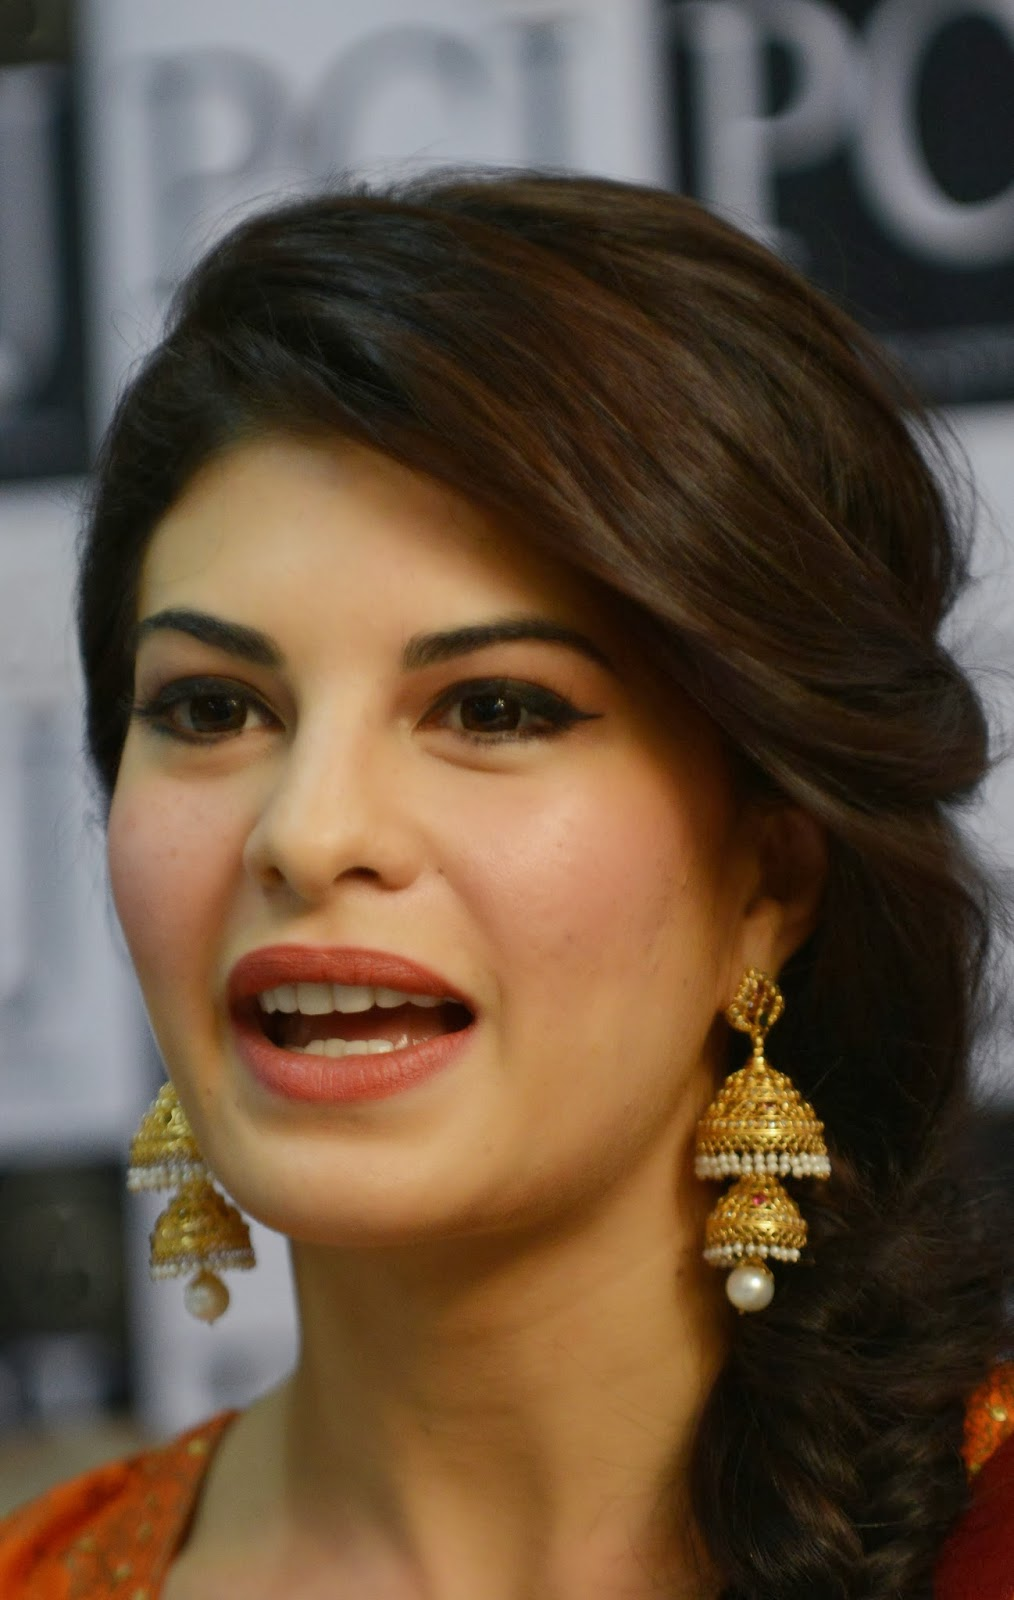 Jacqueline Fernandez, Launche, Jewellery, Gold, Ahmedabad, India, Promotion, Actress, Film, Movie, Showbiz, Fashion,